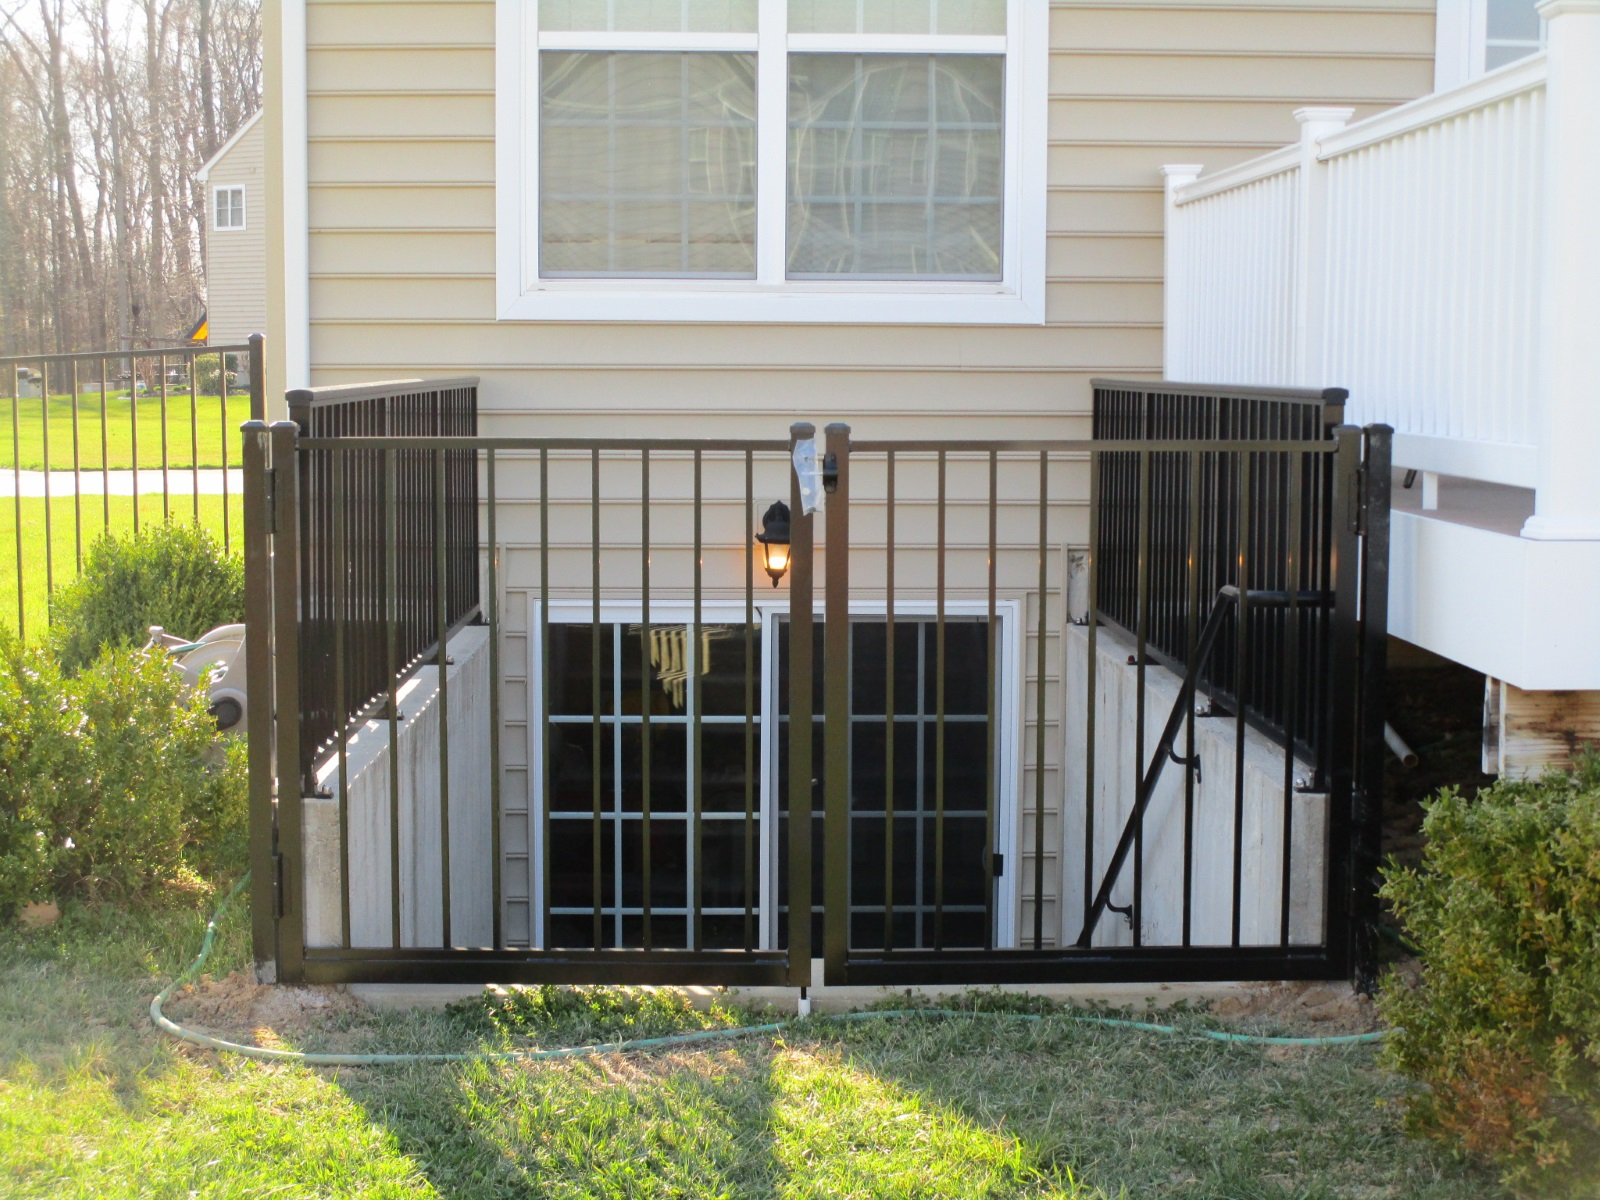 52_basement-railing-with-gate-black-aluminum Railings - Forrest Fencing